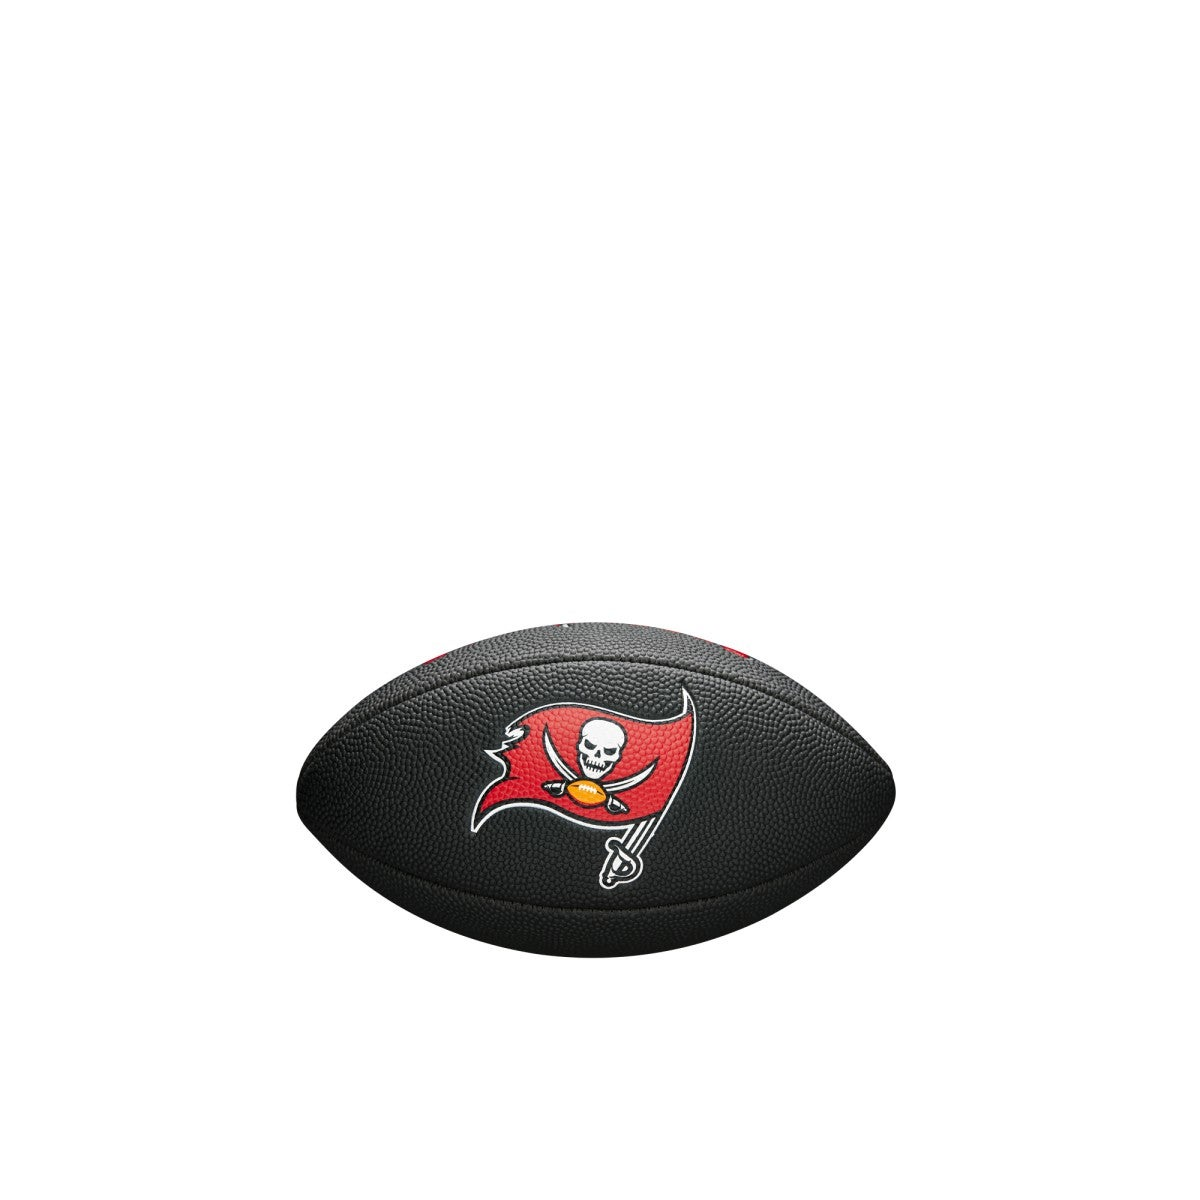 ? NFL TEAM LOGO MINI SIZE FOOTBALL - TAMPA BAY BUCCANEERS